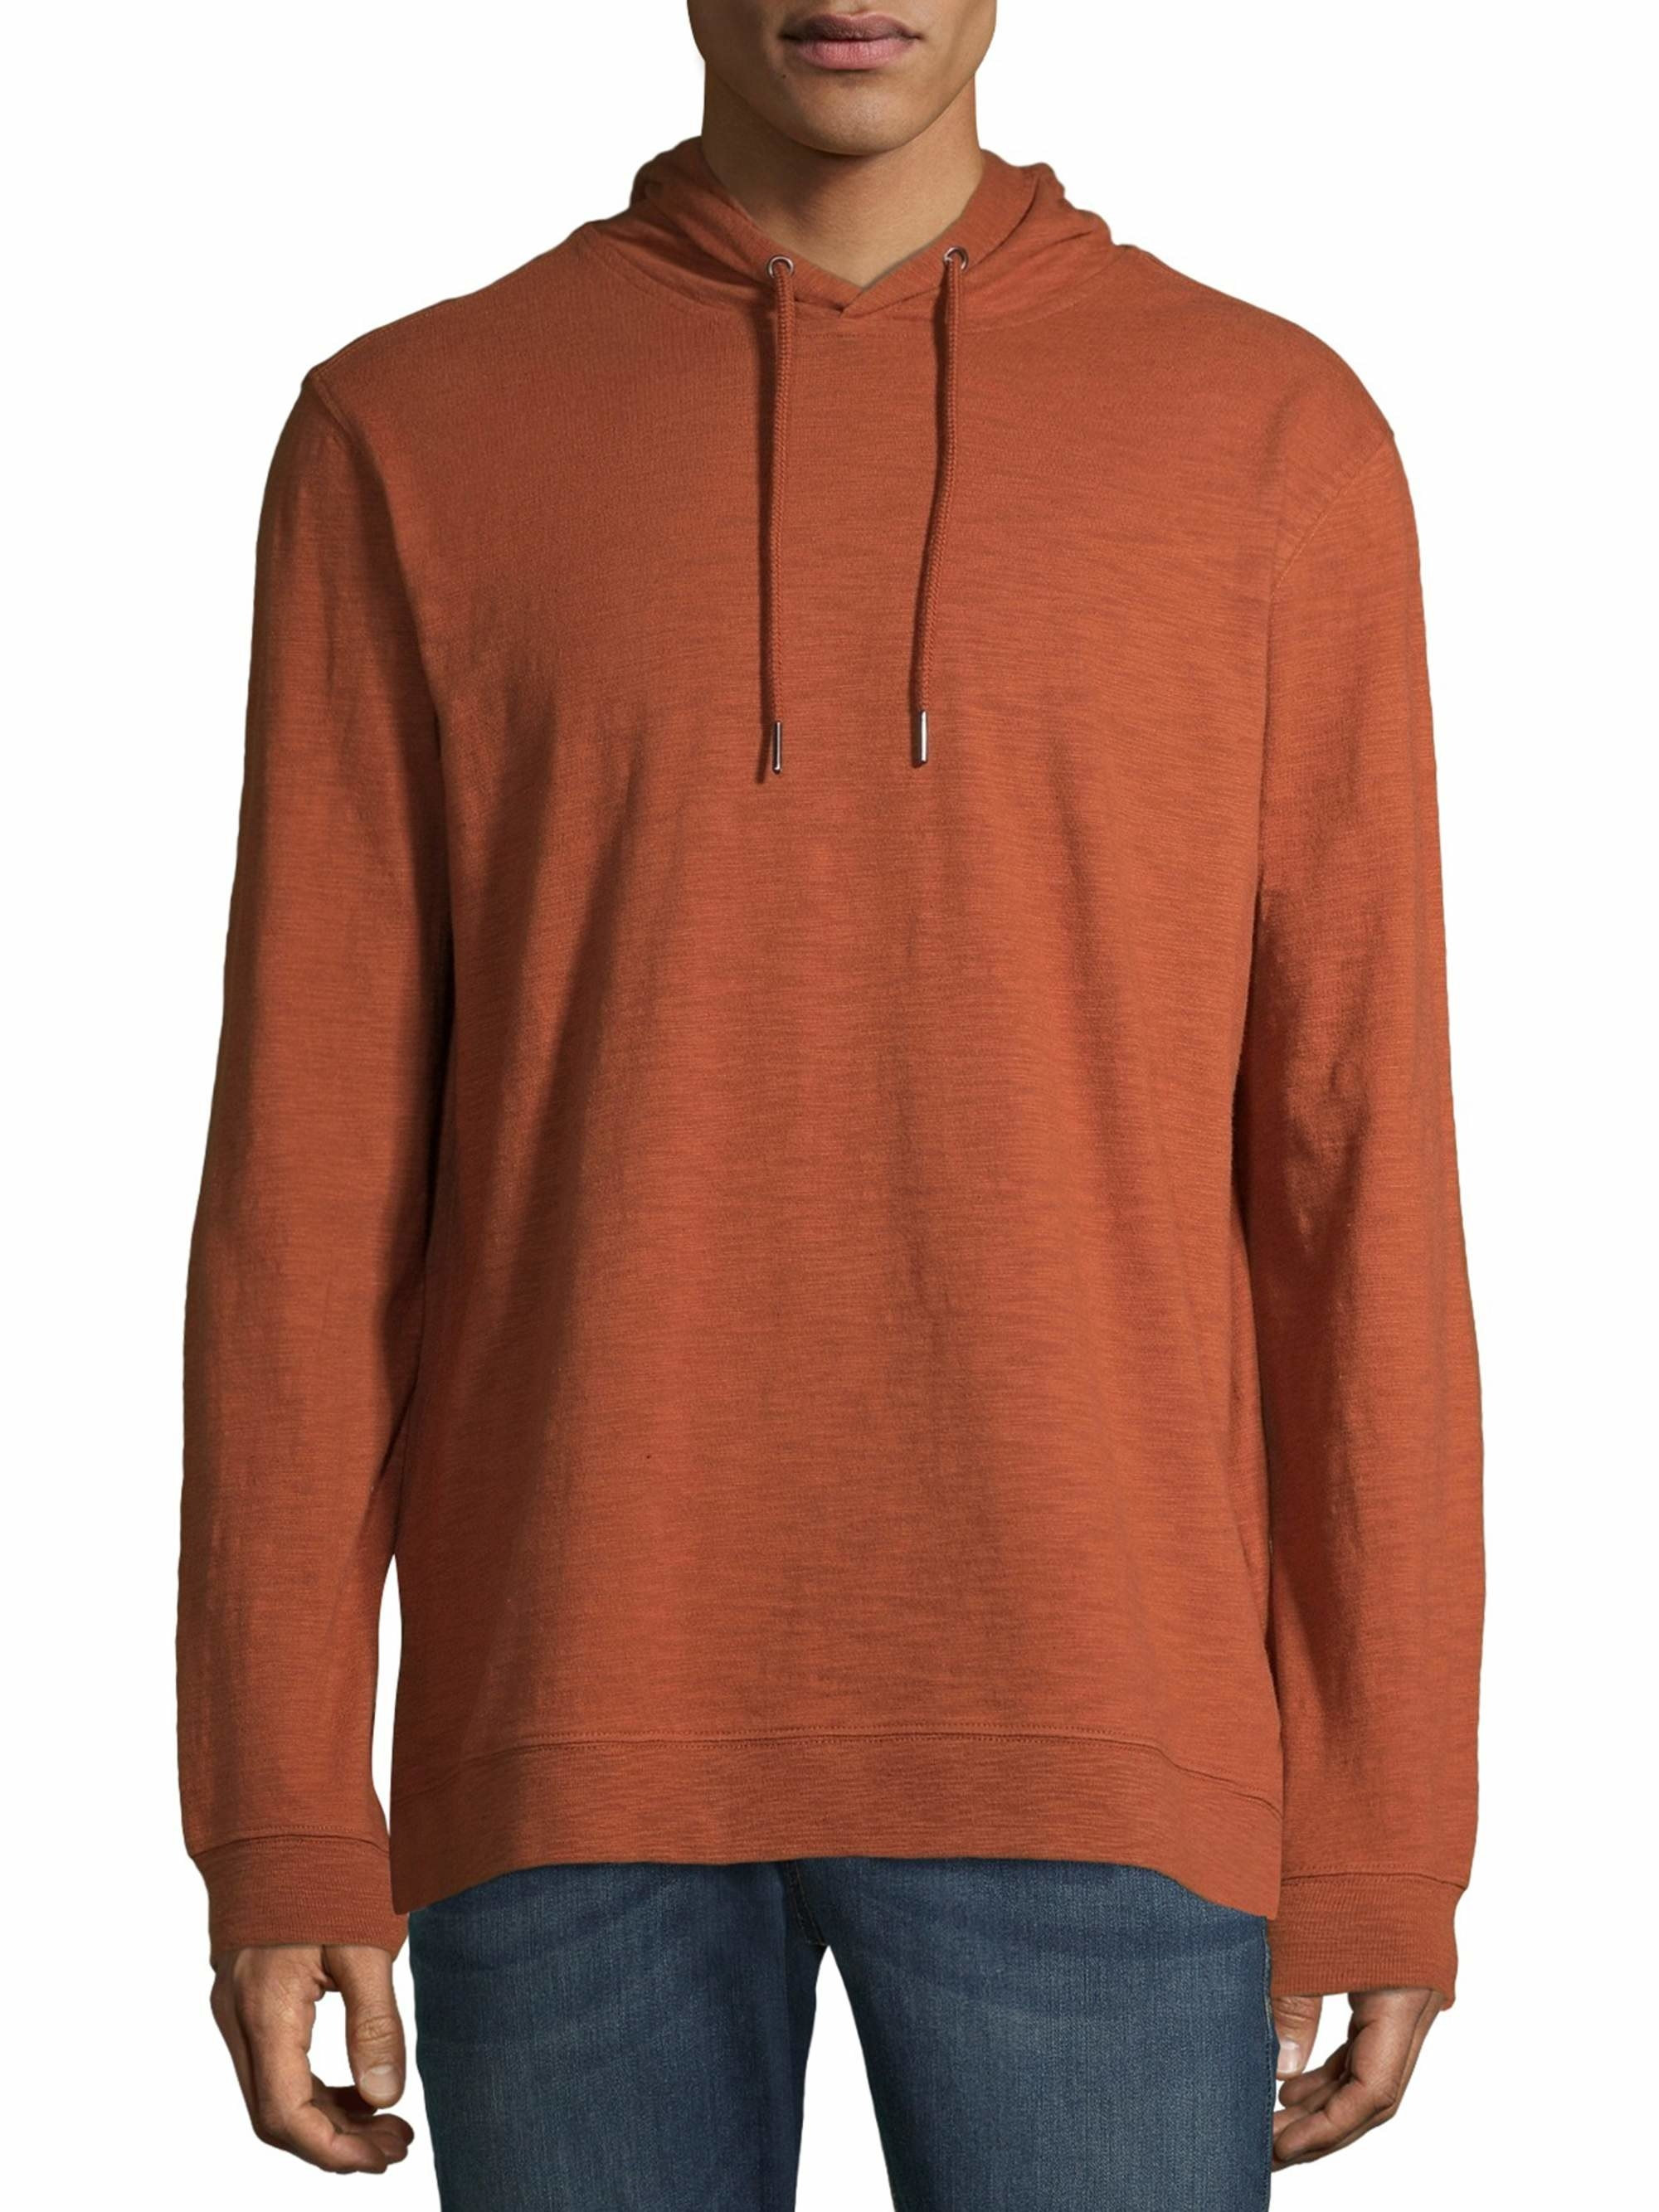 person wearing an orange pullover hoodie